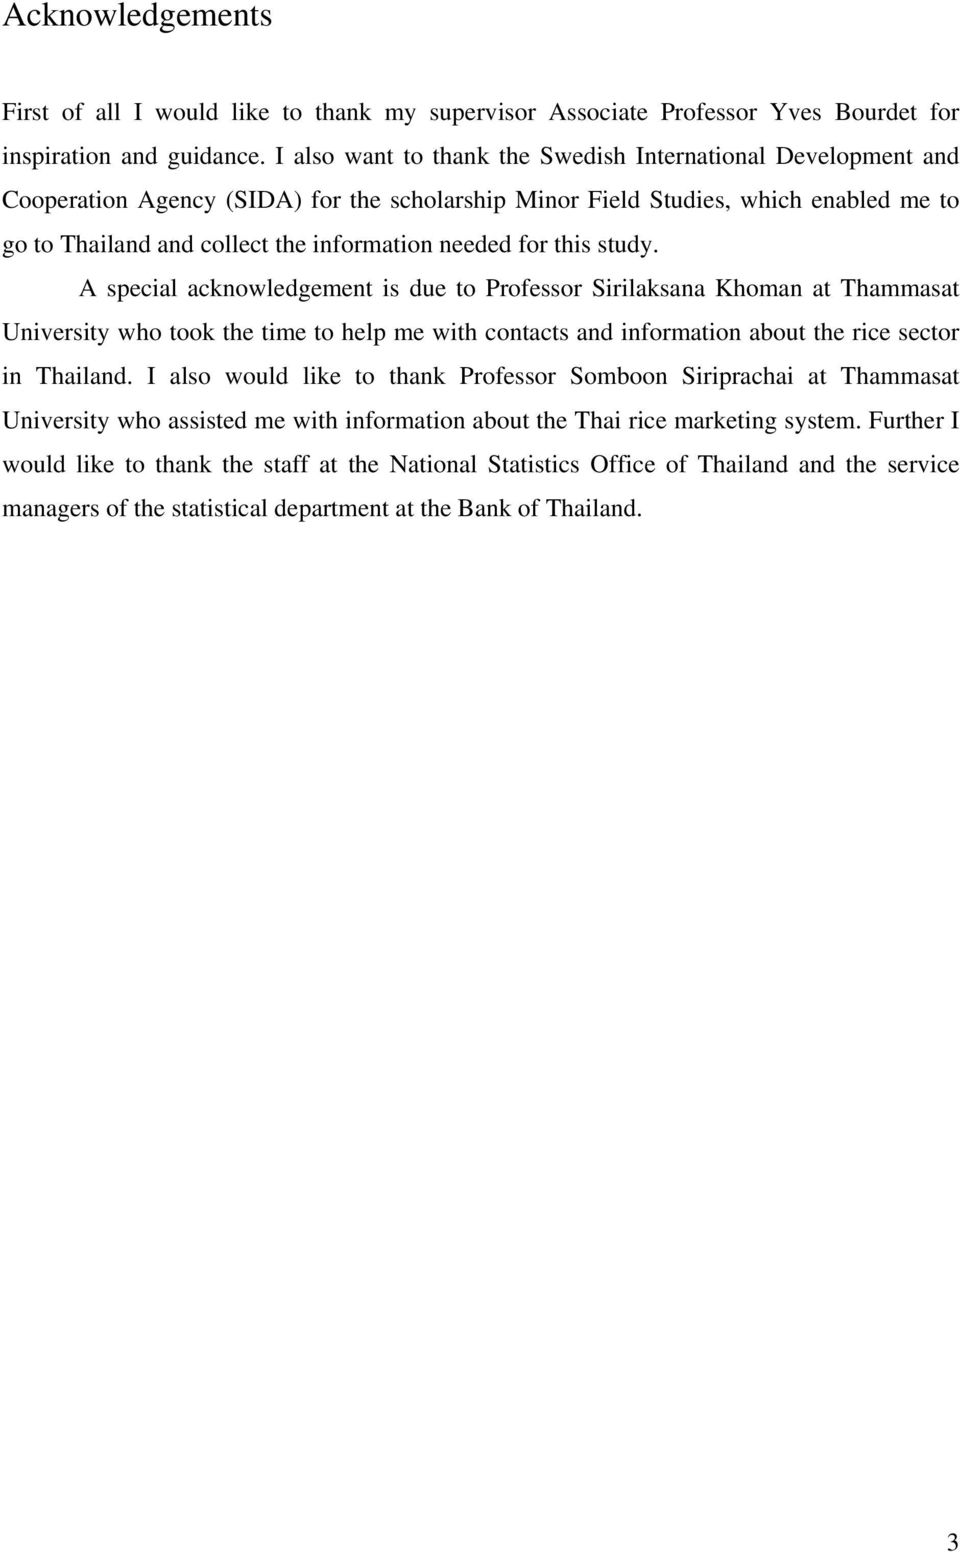 for this study. A special acknowledgement is due to Professor Sirilaksana Khoman at Thammasat University who took the time to help me with contacts and information about the rice sector in Thailand.